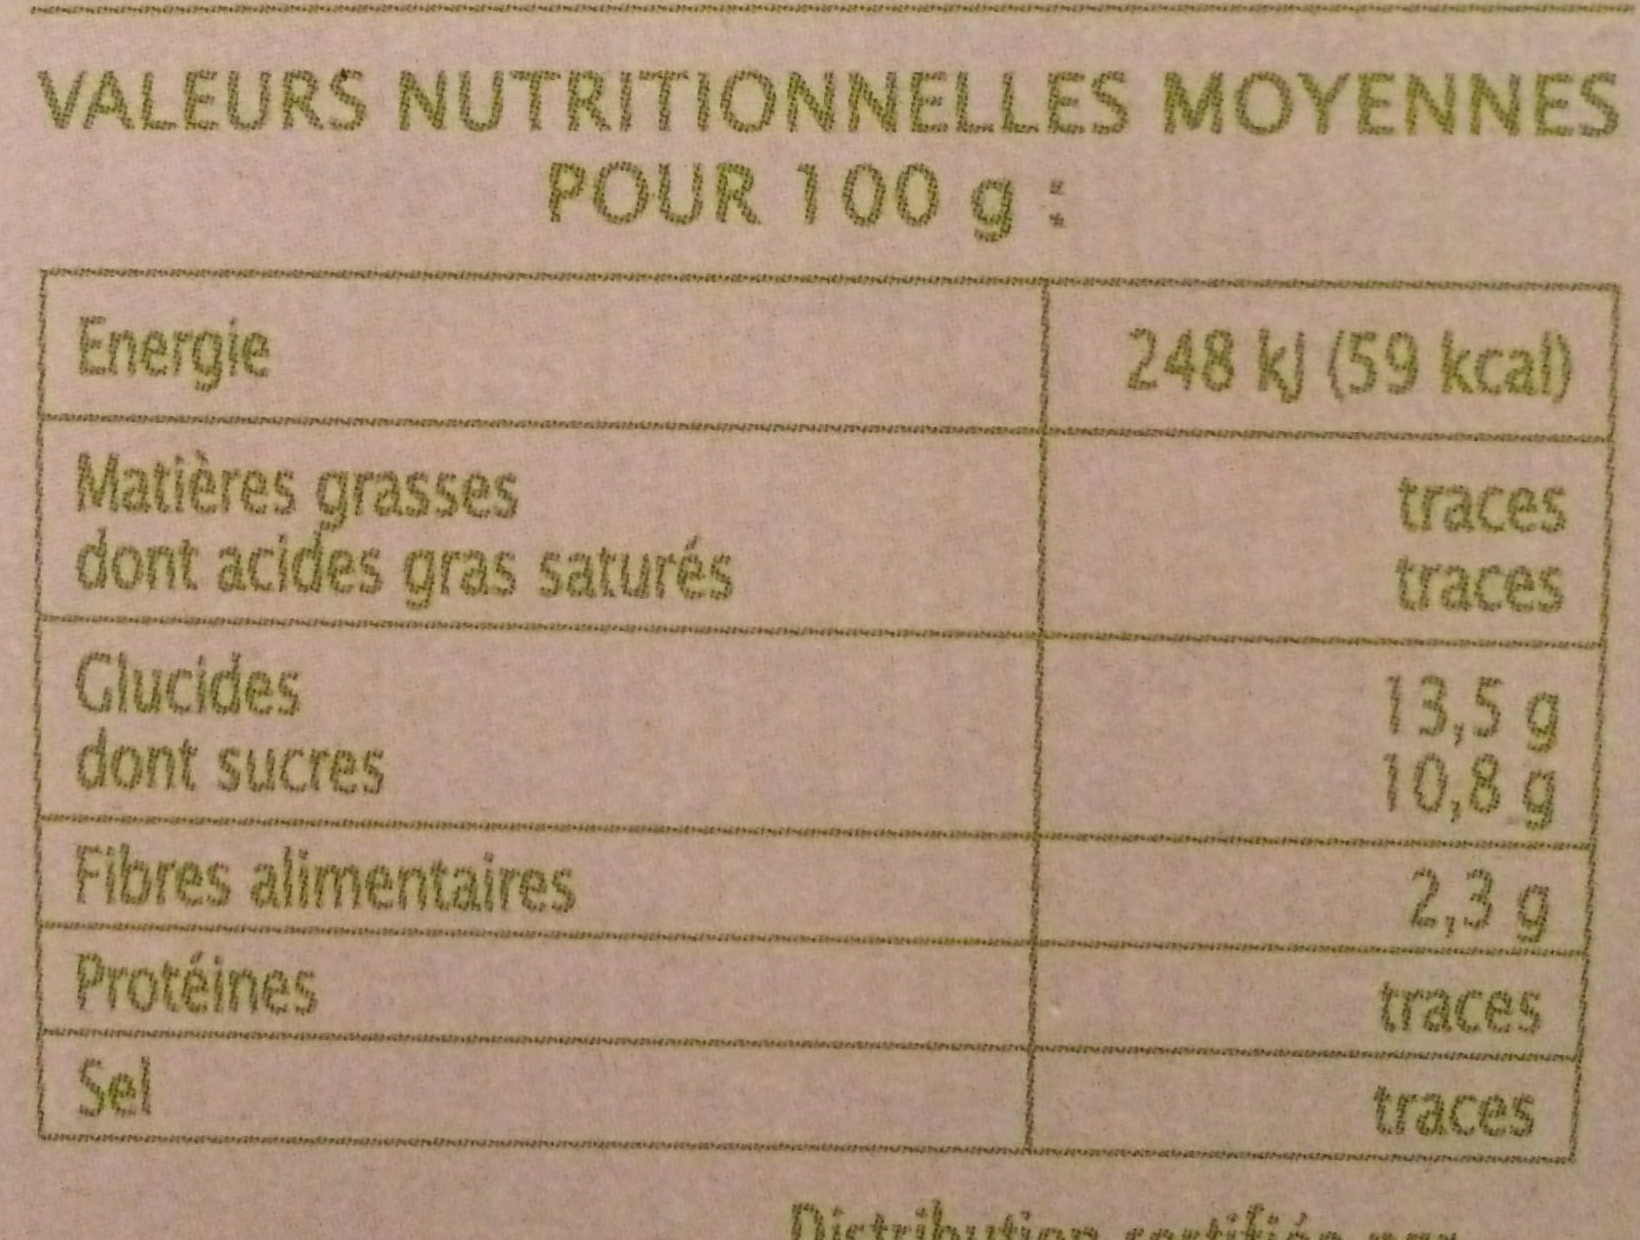 Pomme poire coing - Nutrition facts - fr